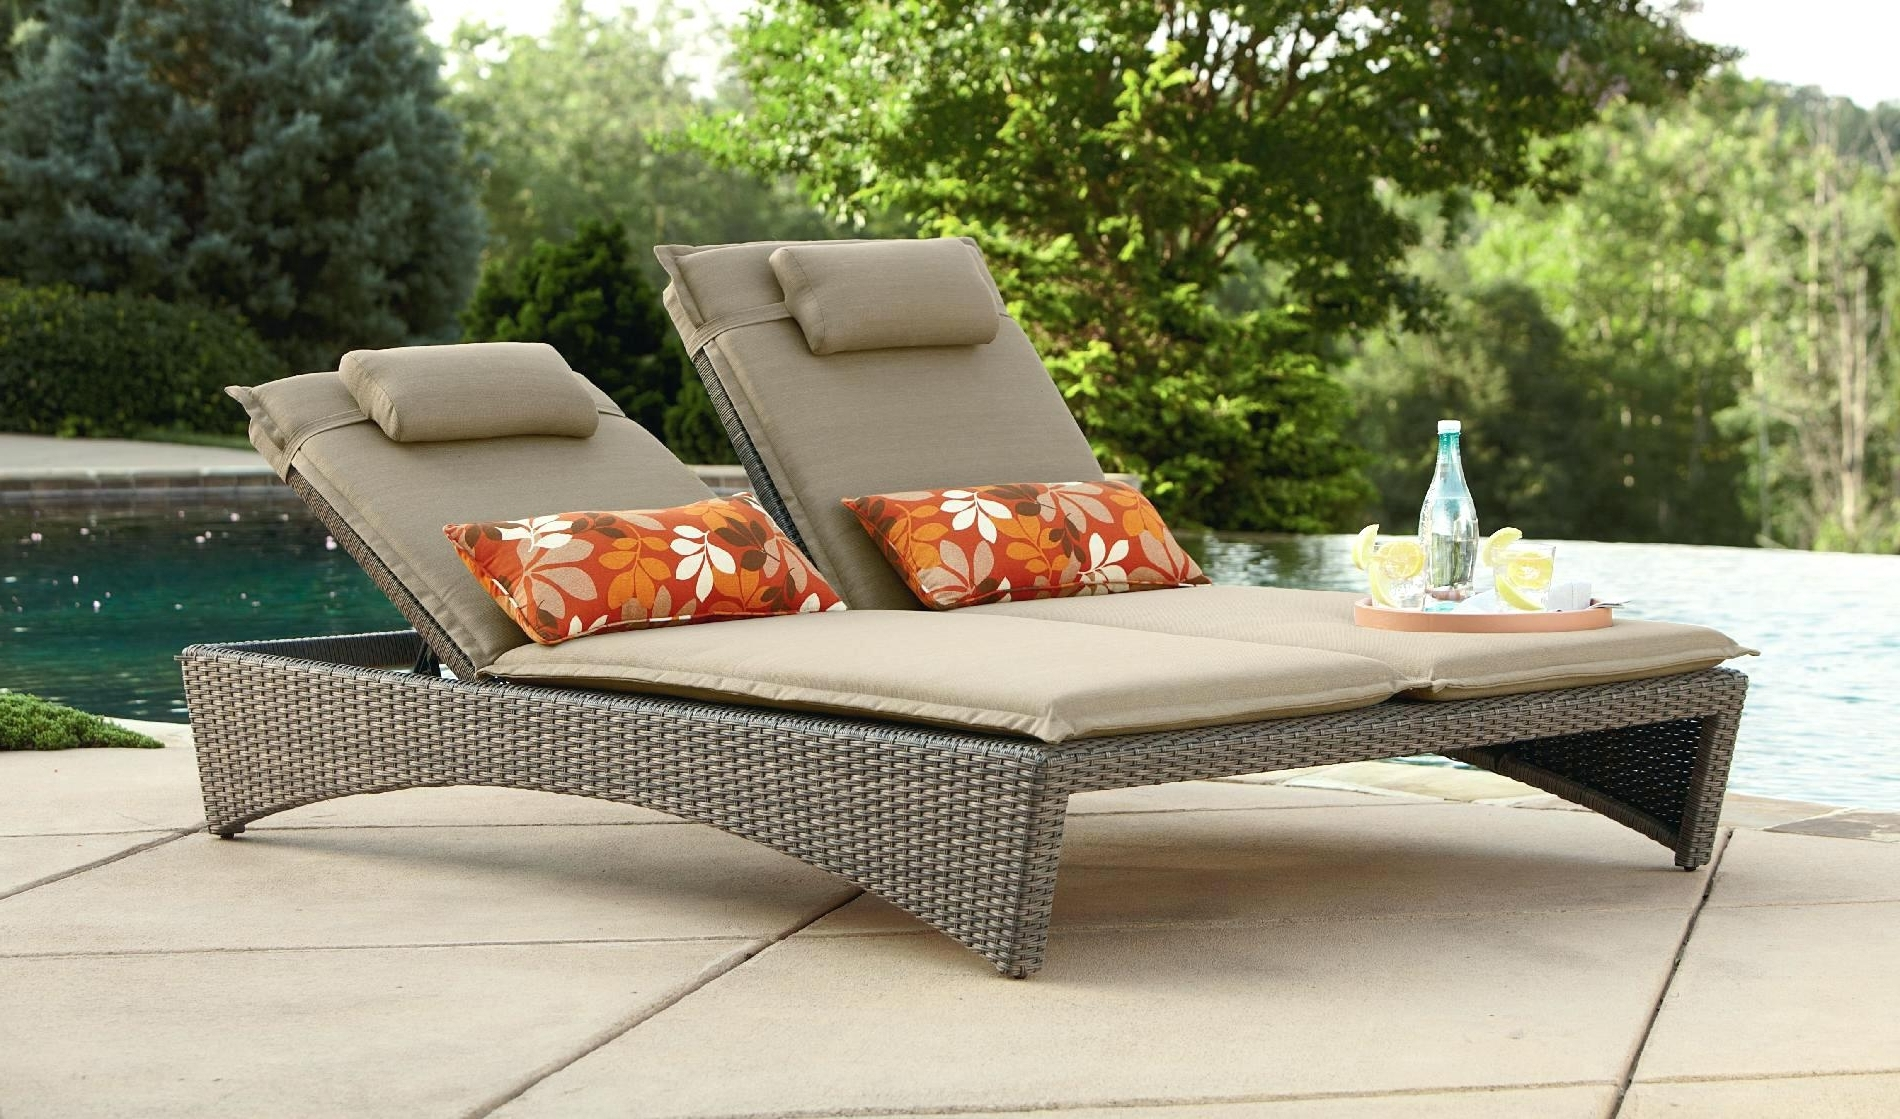 Outdoor Chaise Lounge Chairs Under 100 Awesome Chair For Two Intended For Latest Chaise Lounge Chairs Under $ (View 7 of 15)